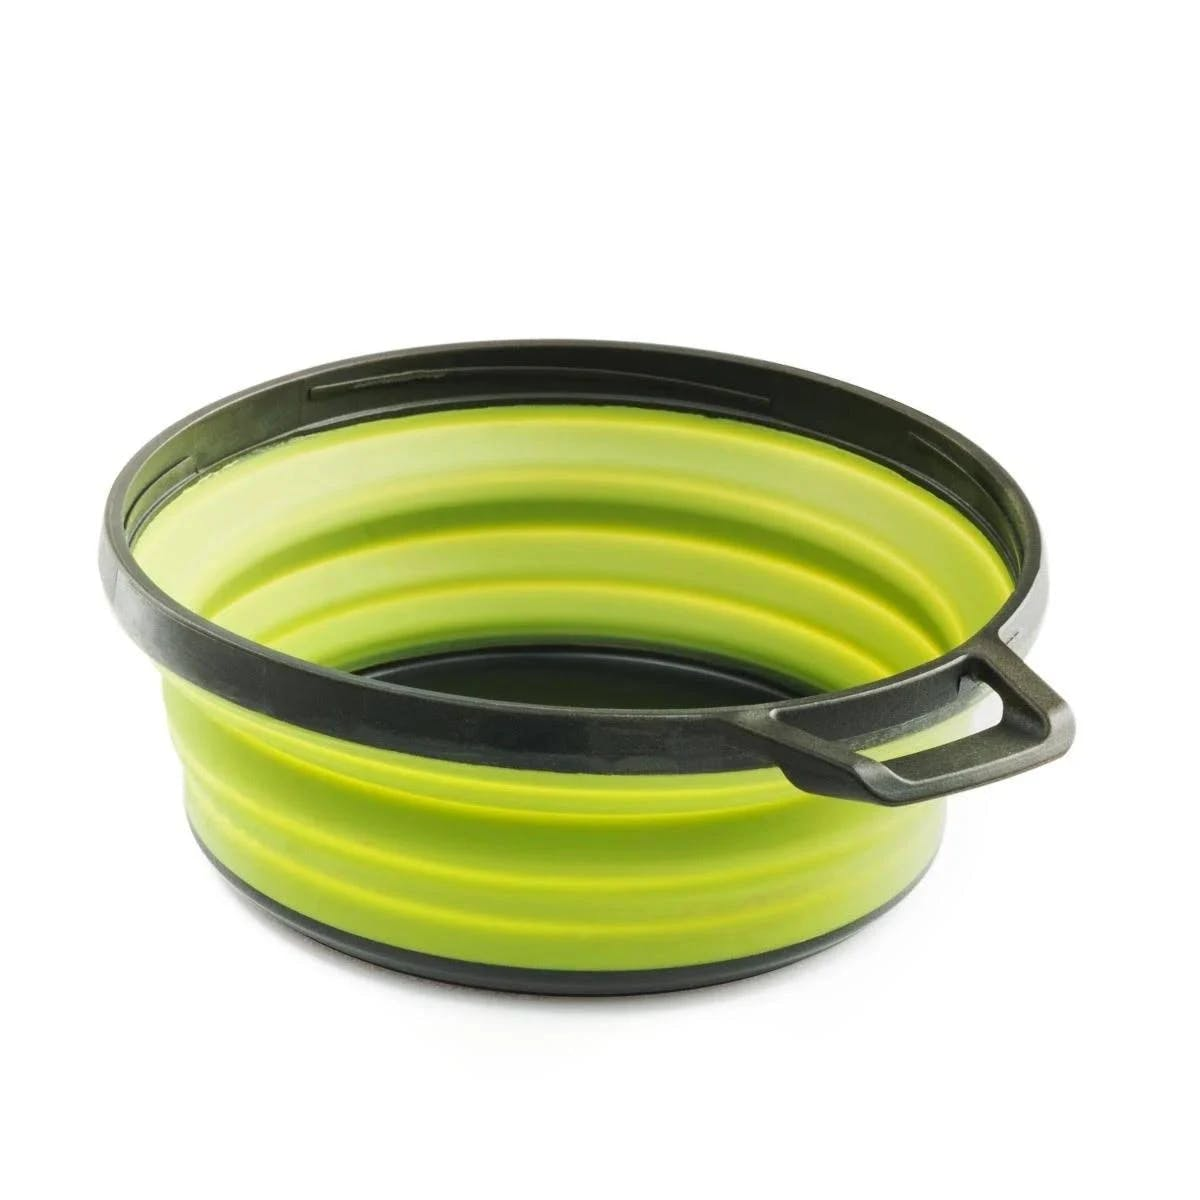 GSI Outdoors Escape Collapsible Bowl - Green